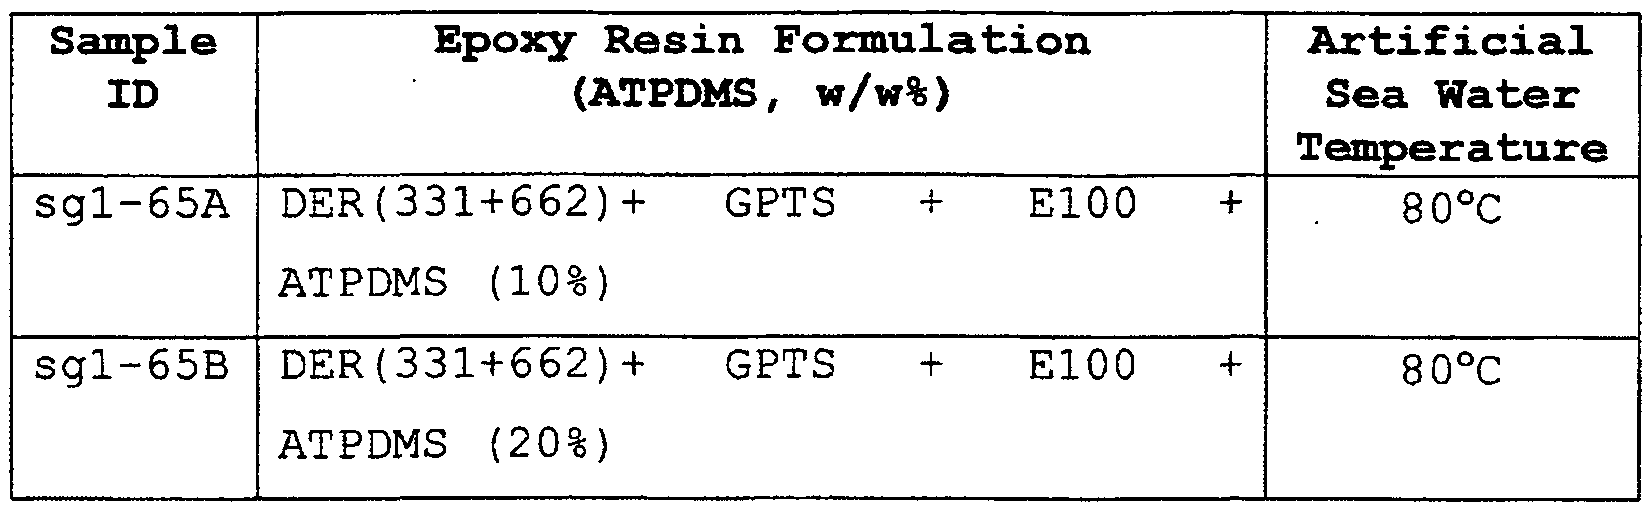 WO2011065813A1 - Water curable resin formulations - Google